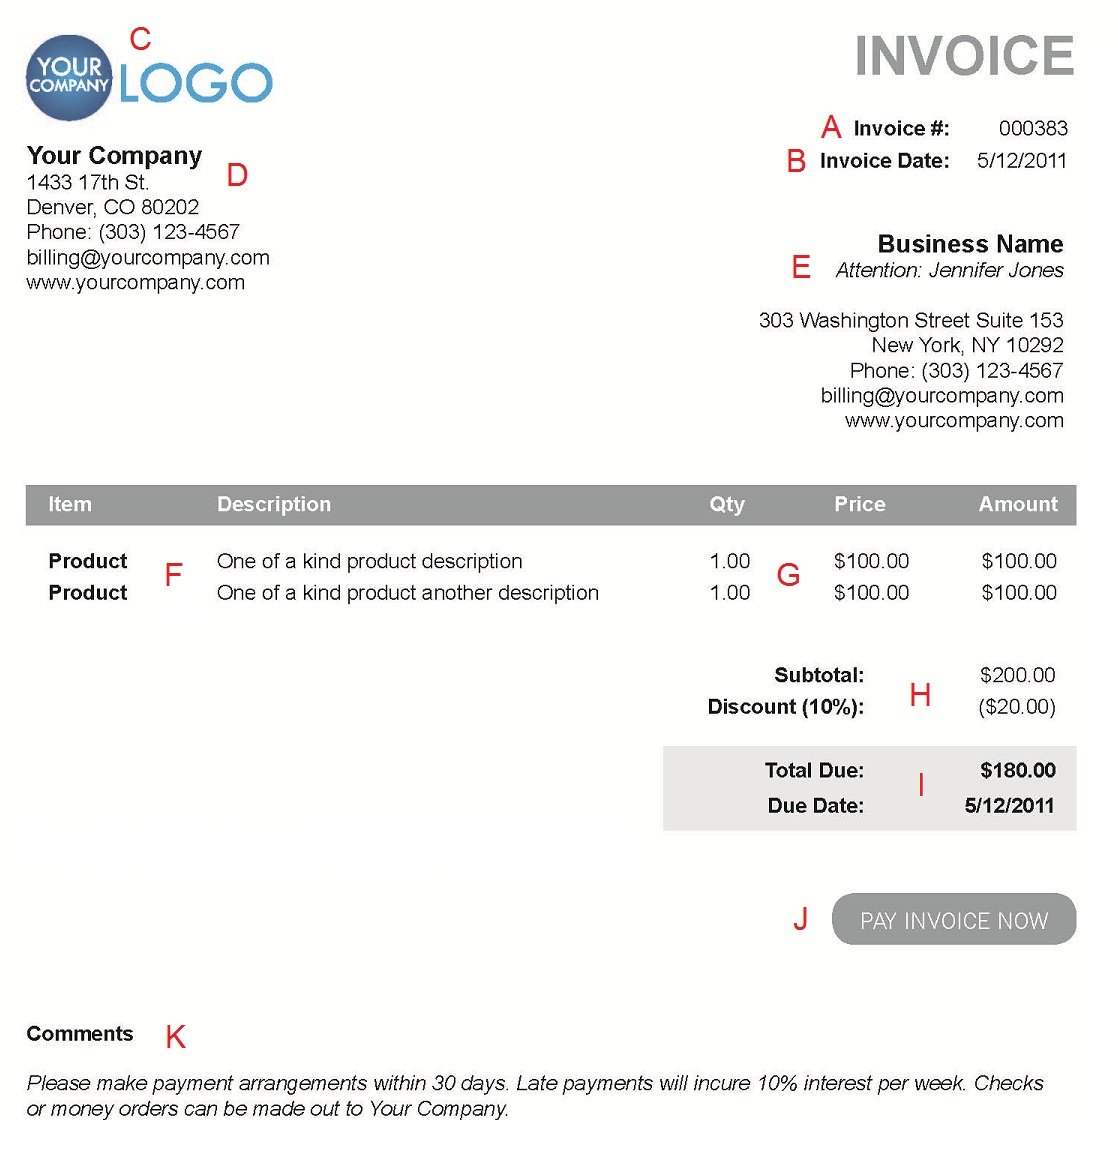 Patriotexpressus  Fascinating The  Different Sections Of An Electronic Payment Invoice With Fetching A  With Captivating Free Invoice Template Pdf Download Also Woocommerce Print Invoice In Addition Electrical Invoice Template And Excel Invoice Template  As Well As Creating Invoices In Quickbooks Additionally Online Invoice System From Paysimplecom With Patriotexpressus  Fetching The  Different Sections Of An Electronic Payment Invoice With Captivating A  And Fascinating Free Invoice Template Pdf Download Also Woocommerce Print Invoice In Addition Electrical Invoice Template From Paysimplecom